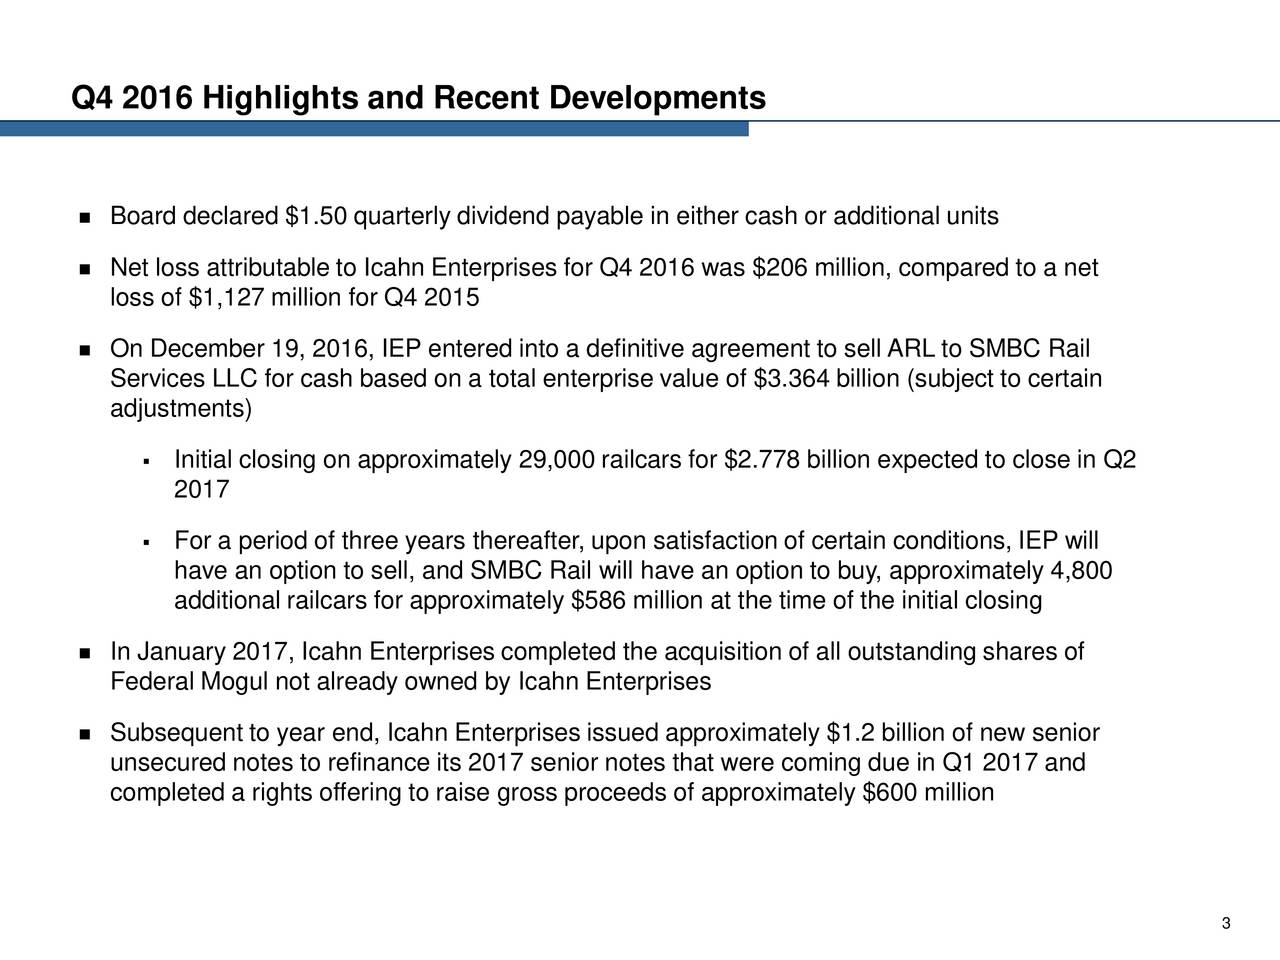 Board declared $1.50 quarterly dividend payable in either cash or additional units Net loss attributable to Icahn Enterprises for Q4 2016 was $206 million, compared to a net loss of $1,127 million for Q4 2015 On December 19, 2016, IEP entered into a definitive agreement to sell ARL to SMBC Rail Services LLC for cash based on a total enterprise value of $3.364 billion (subject to certain adjustments) Initial closing on approximately 29,000 railcars for $2.778 billion expected to close in Q2 2017 For a period of three years thereafter, upon satisfaction of certain conditions, IEP will have an option to sell, and SMBC Rail will have an option to buy, approximately 4,800 additional railcars for approximately $586 million at the time of the initial closing In January 2017, Icahn Enterprises completed the acquisition of all outstanding shares of Federal Mogul not already owned by Icahn Enterprises Subsequent to year end, Icahn Enterprises issued approximately $1.2 billion of new senior unsecured notes to refinance its 2017 senior notes that were coming due in Q1 2017 and completed a rights offering to raise gross proceeds of approximately $600 million 3